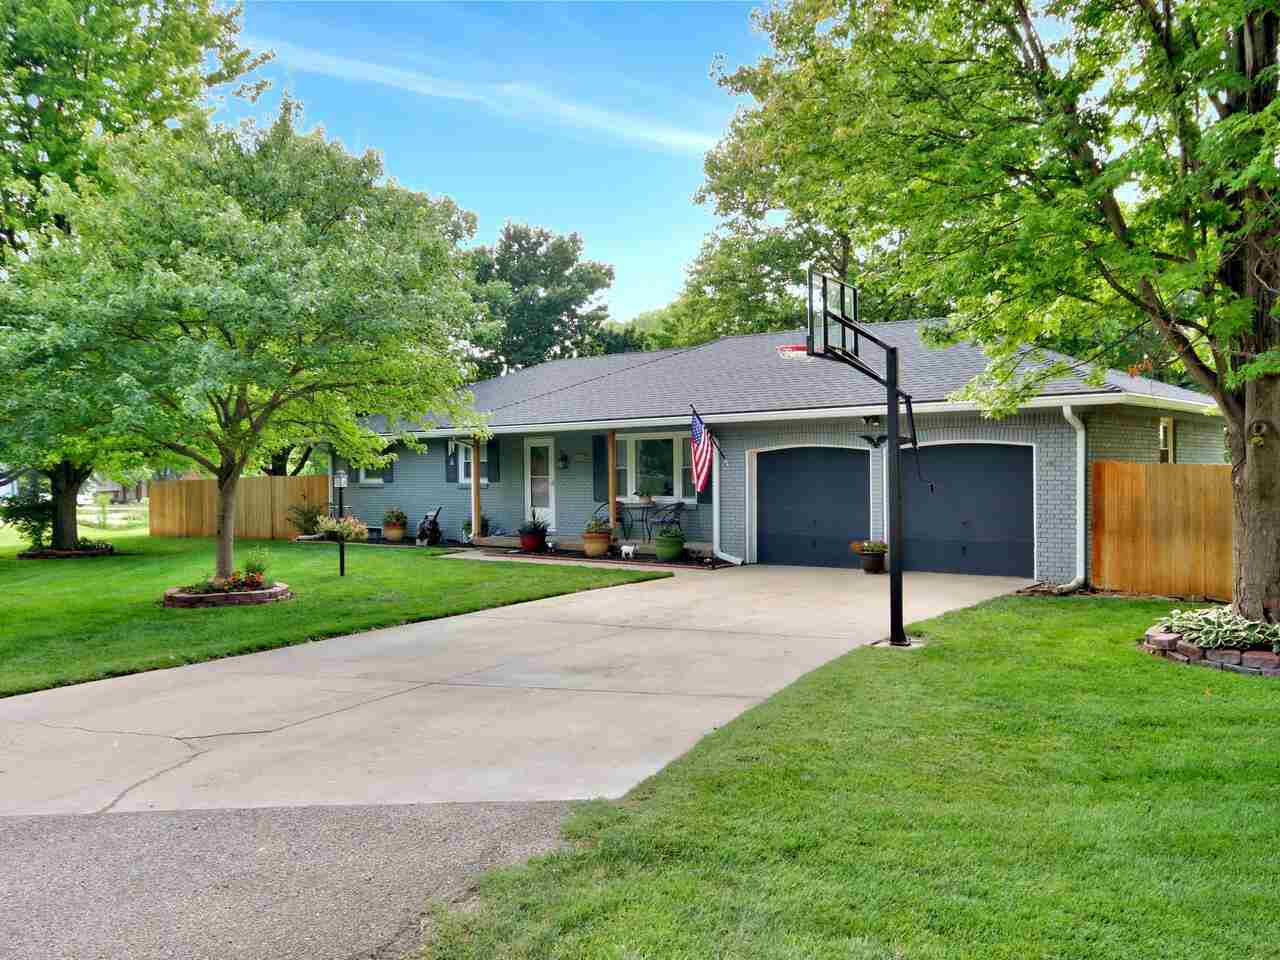 Don't Miss this opportunity in the Goddard school district.  This home features 4 bedrooms and 2 ful